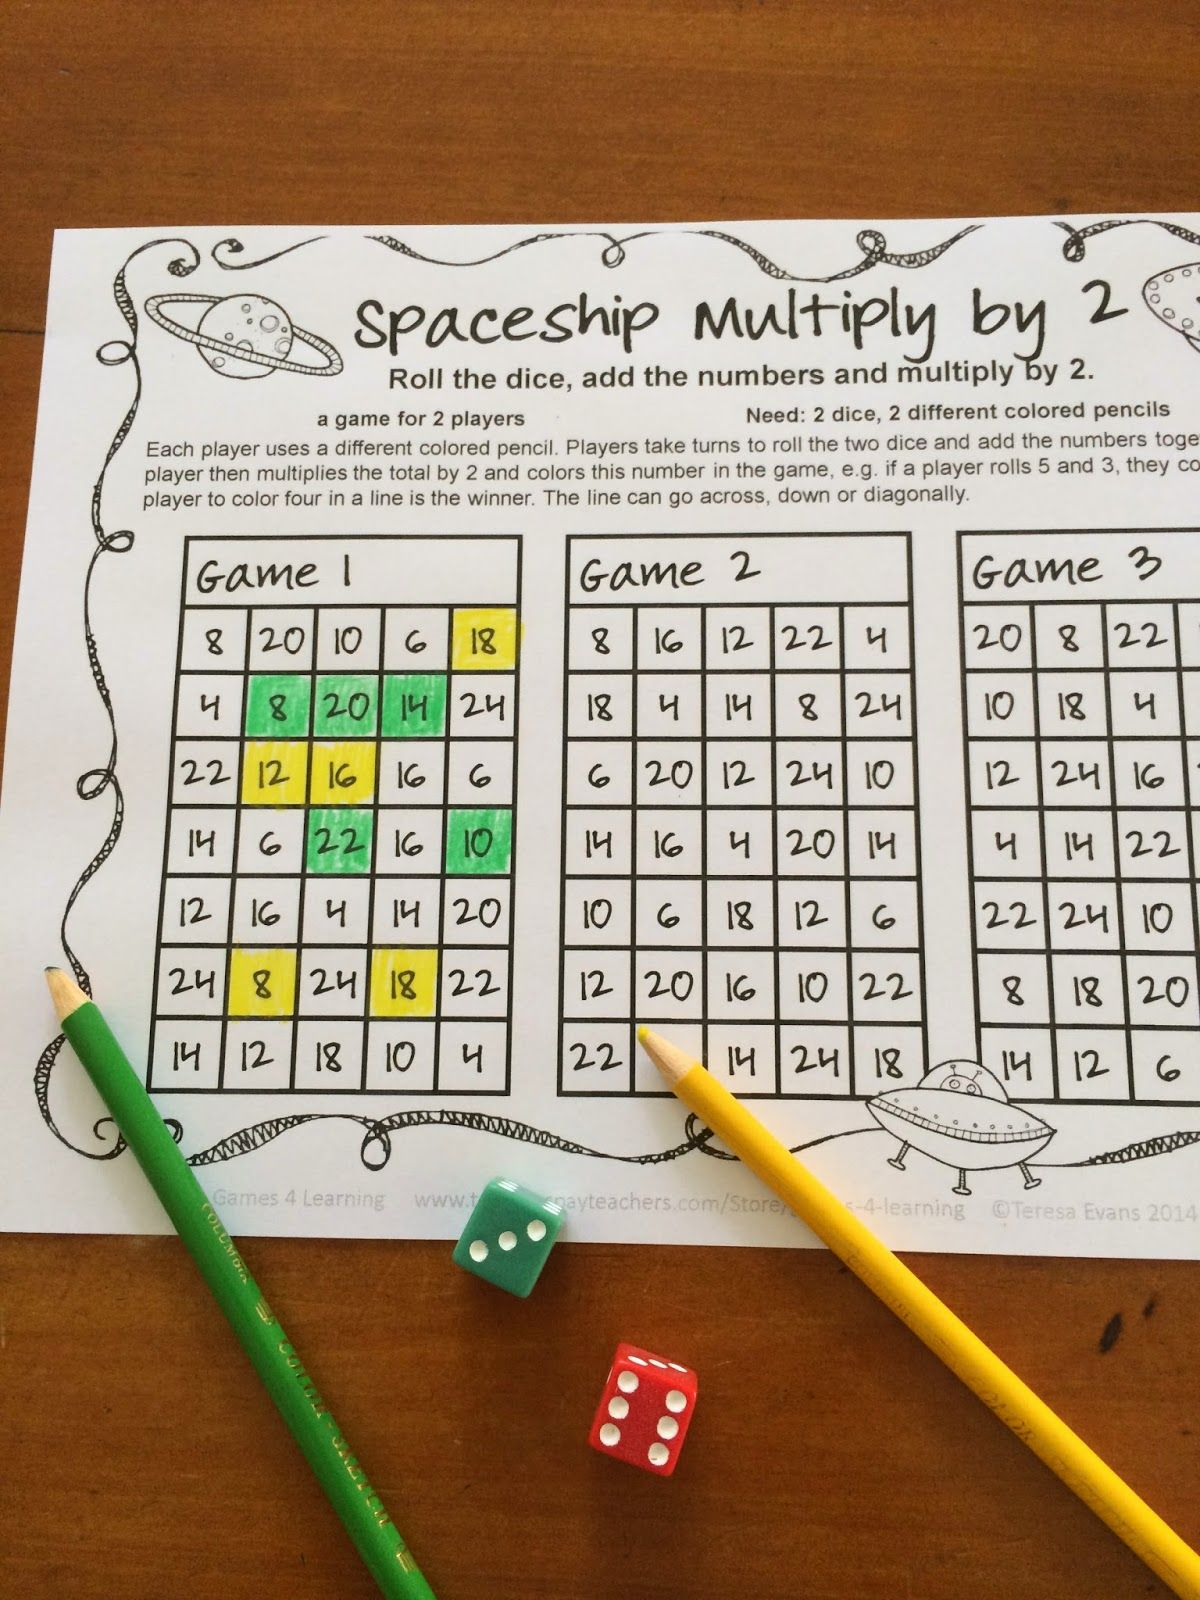 In Spaceship Multiply By 2 The Players Roll 2 Dice Add The Numbers And Multiply The Total By 2